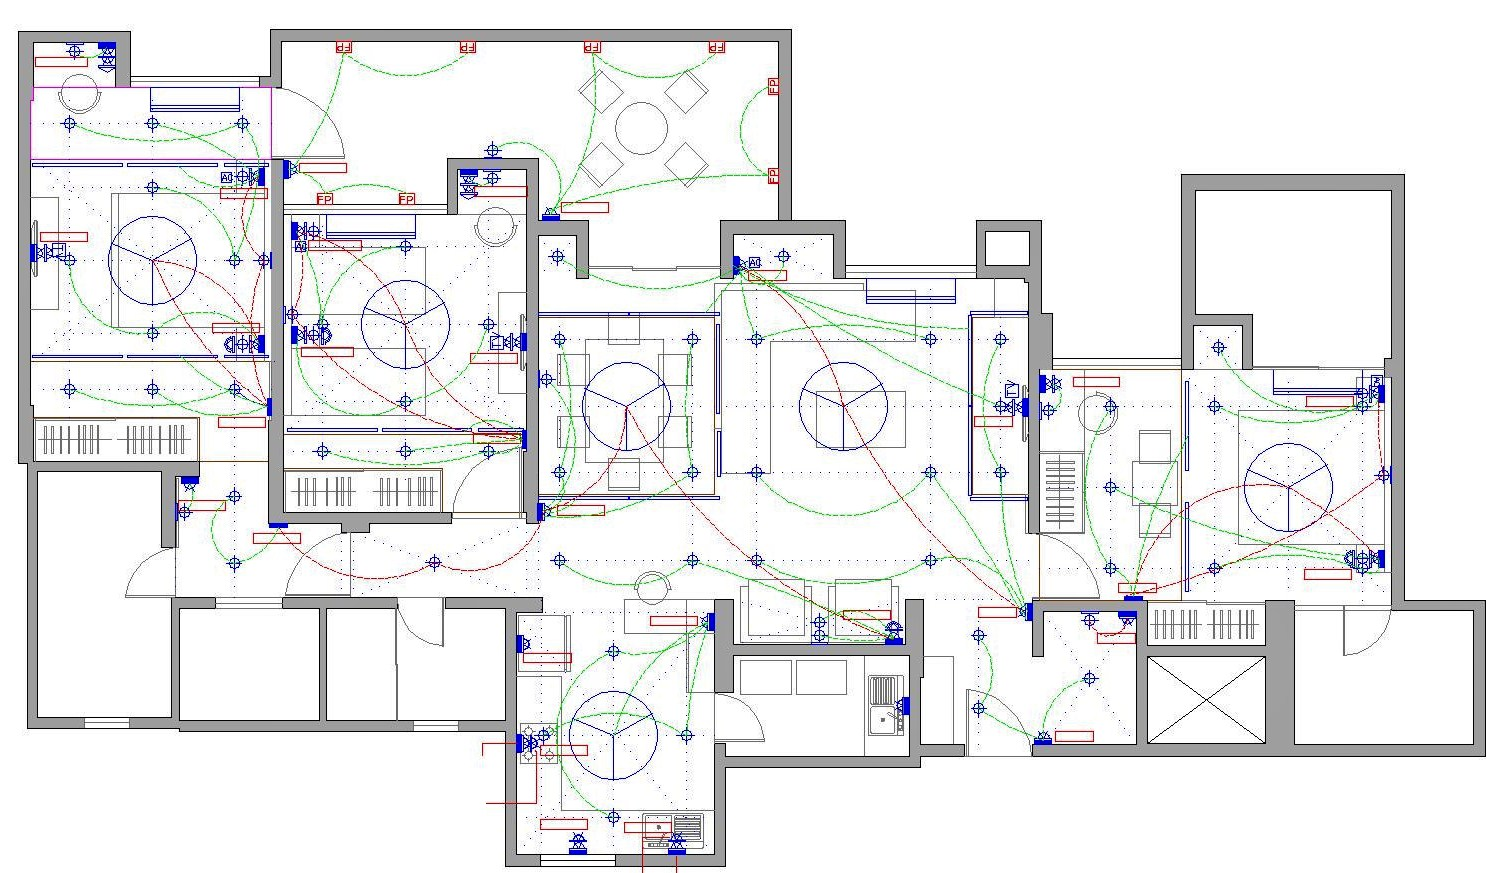 Residential Electrical Drawing Symbols - Merzie.net